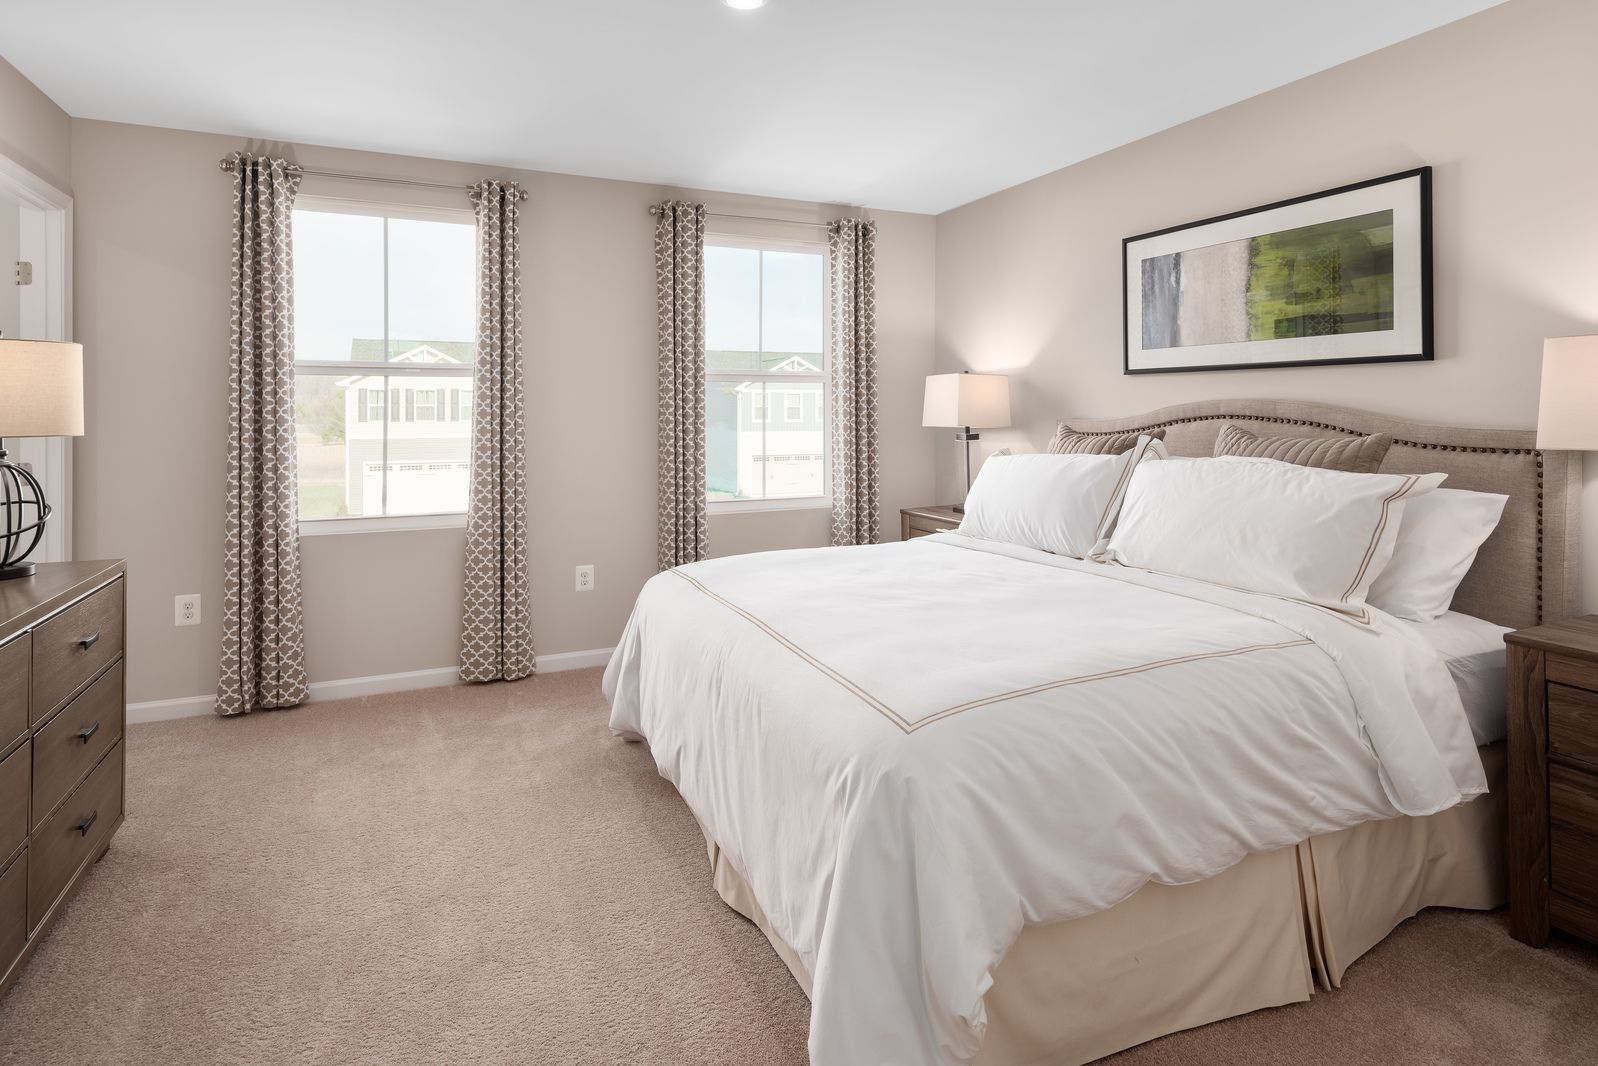 Bedroom featured in the Birch By Ryan Homes in Akron, OH